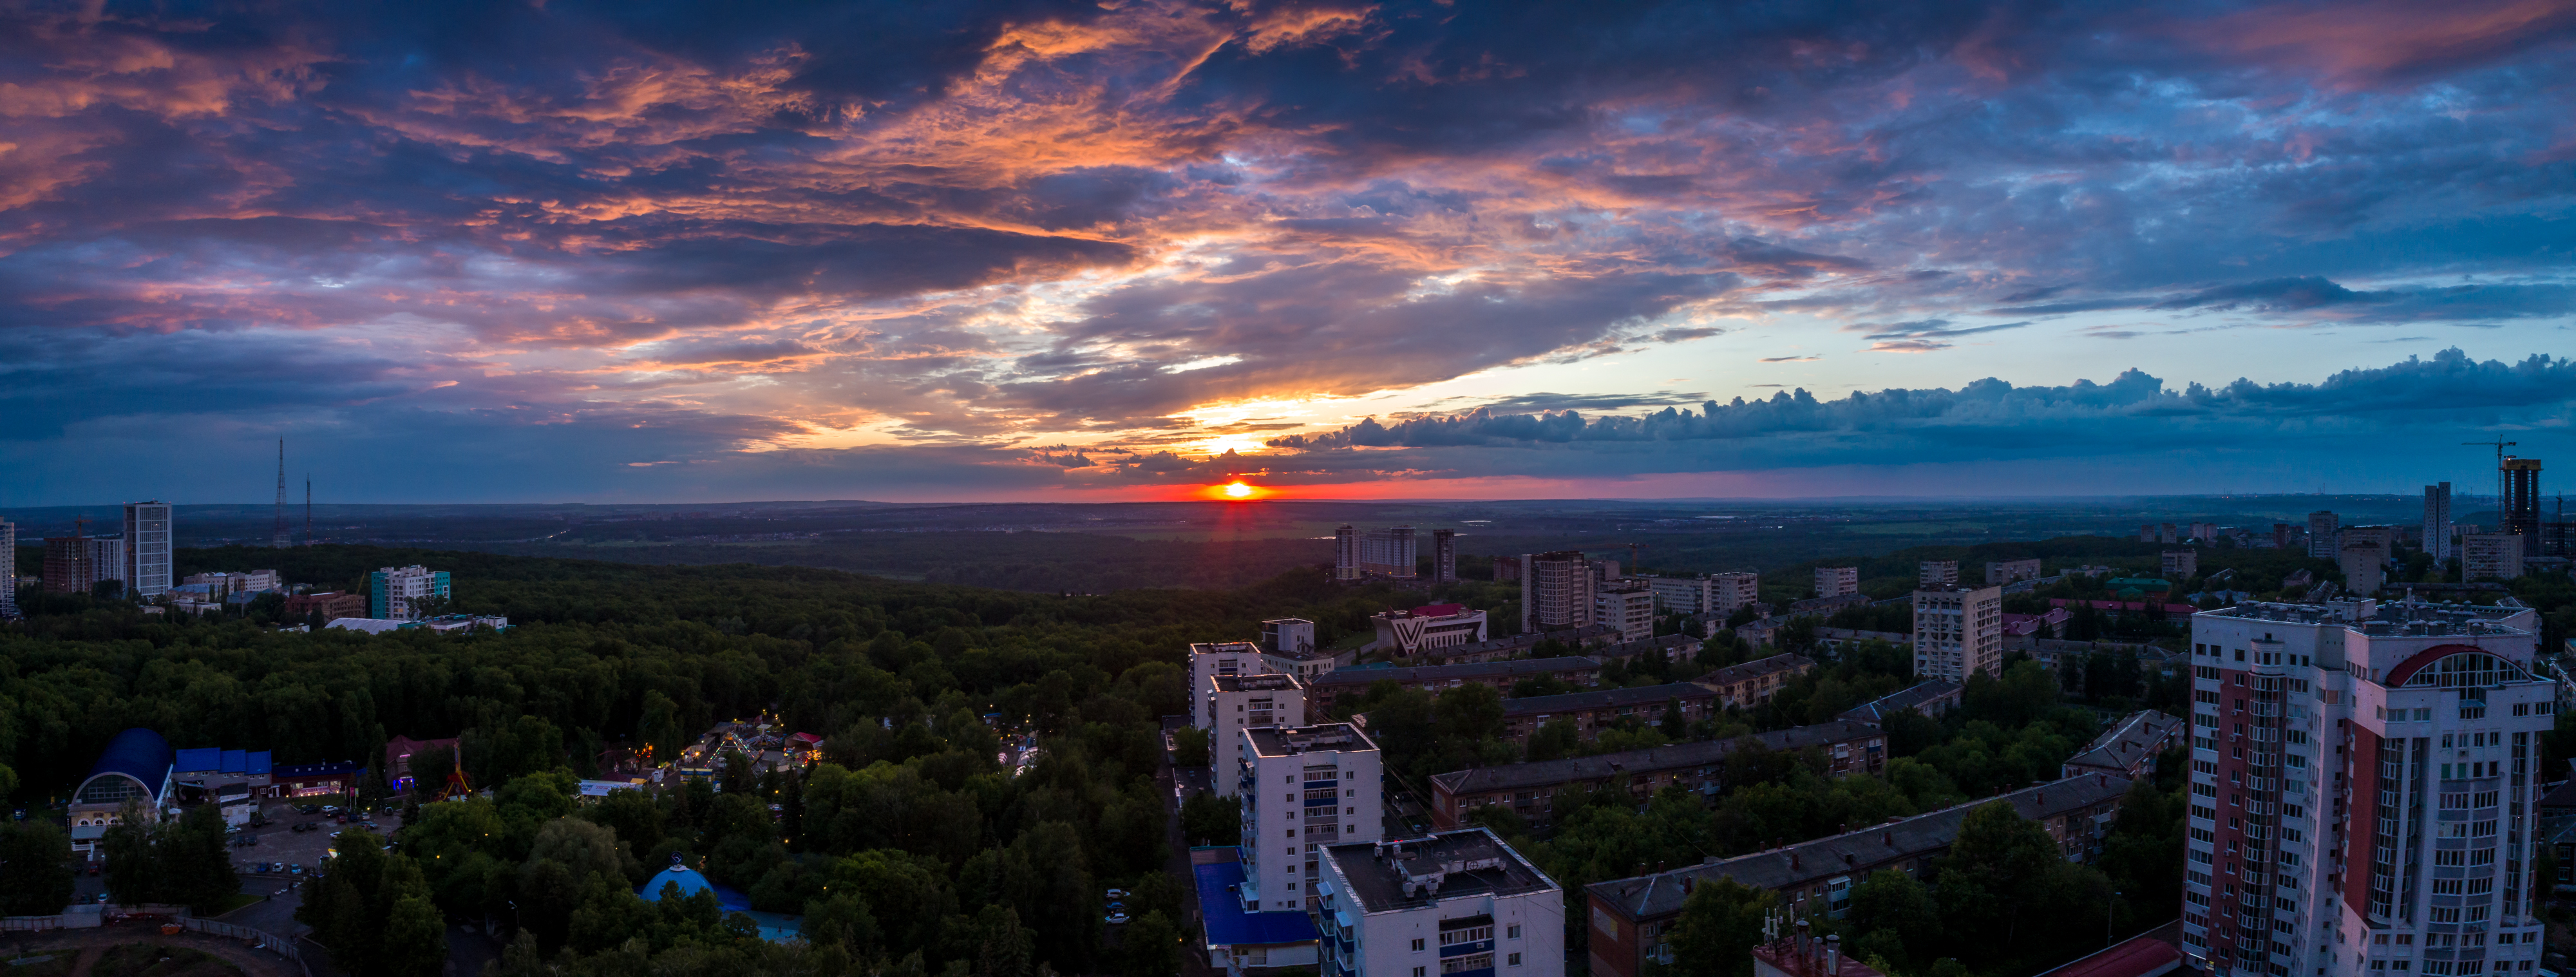 Sunset in Ufa